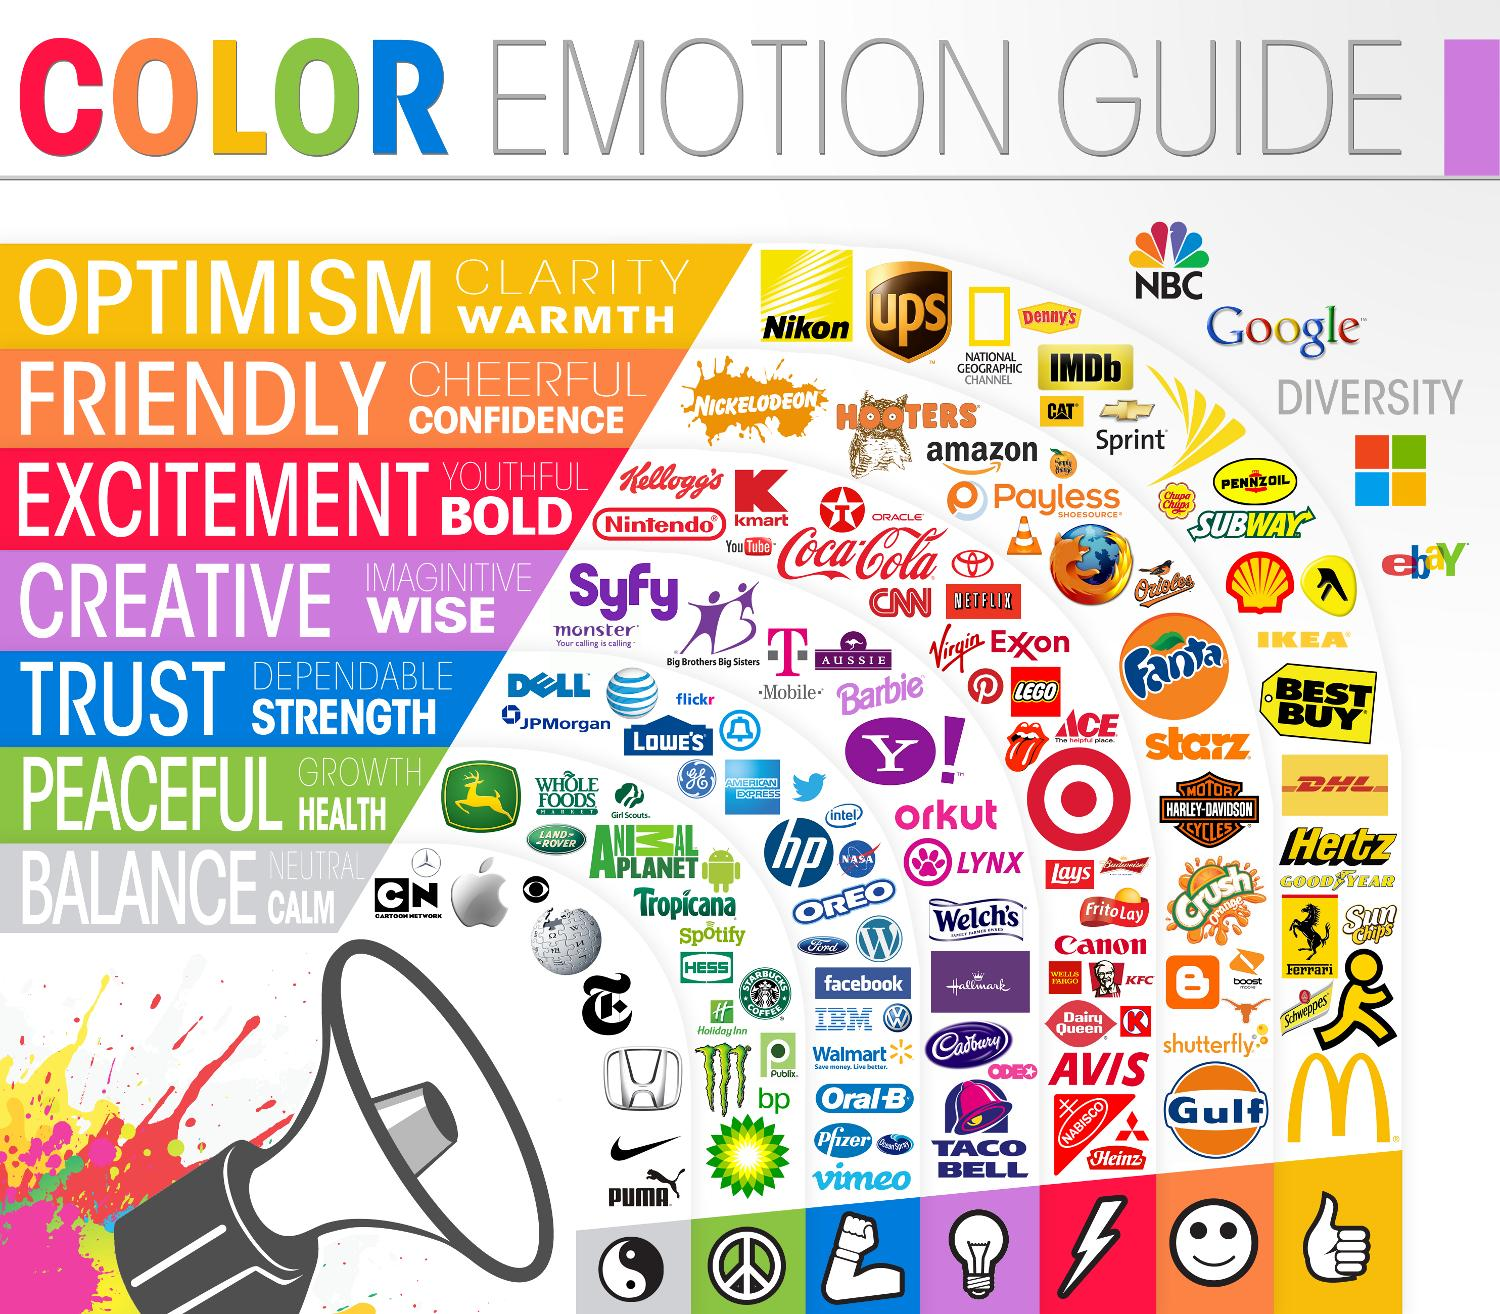 couleur-signification-emotion